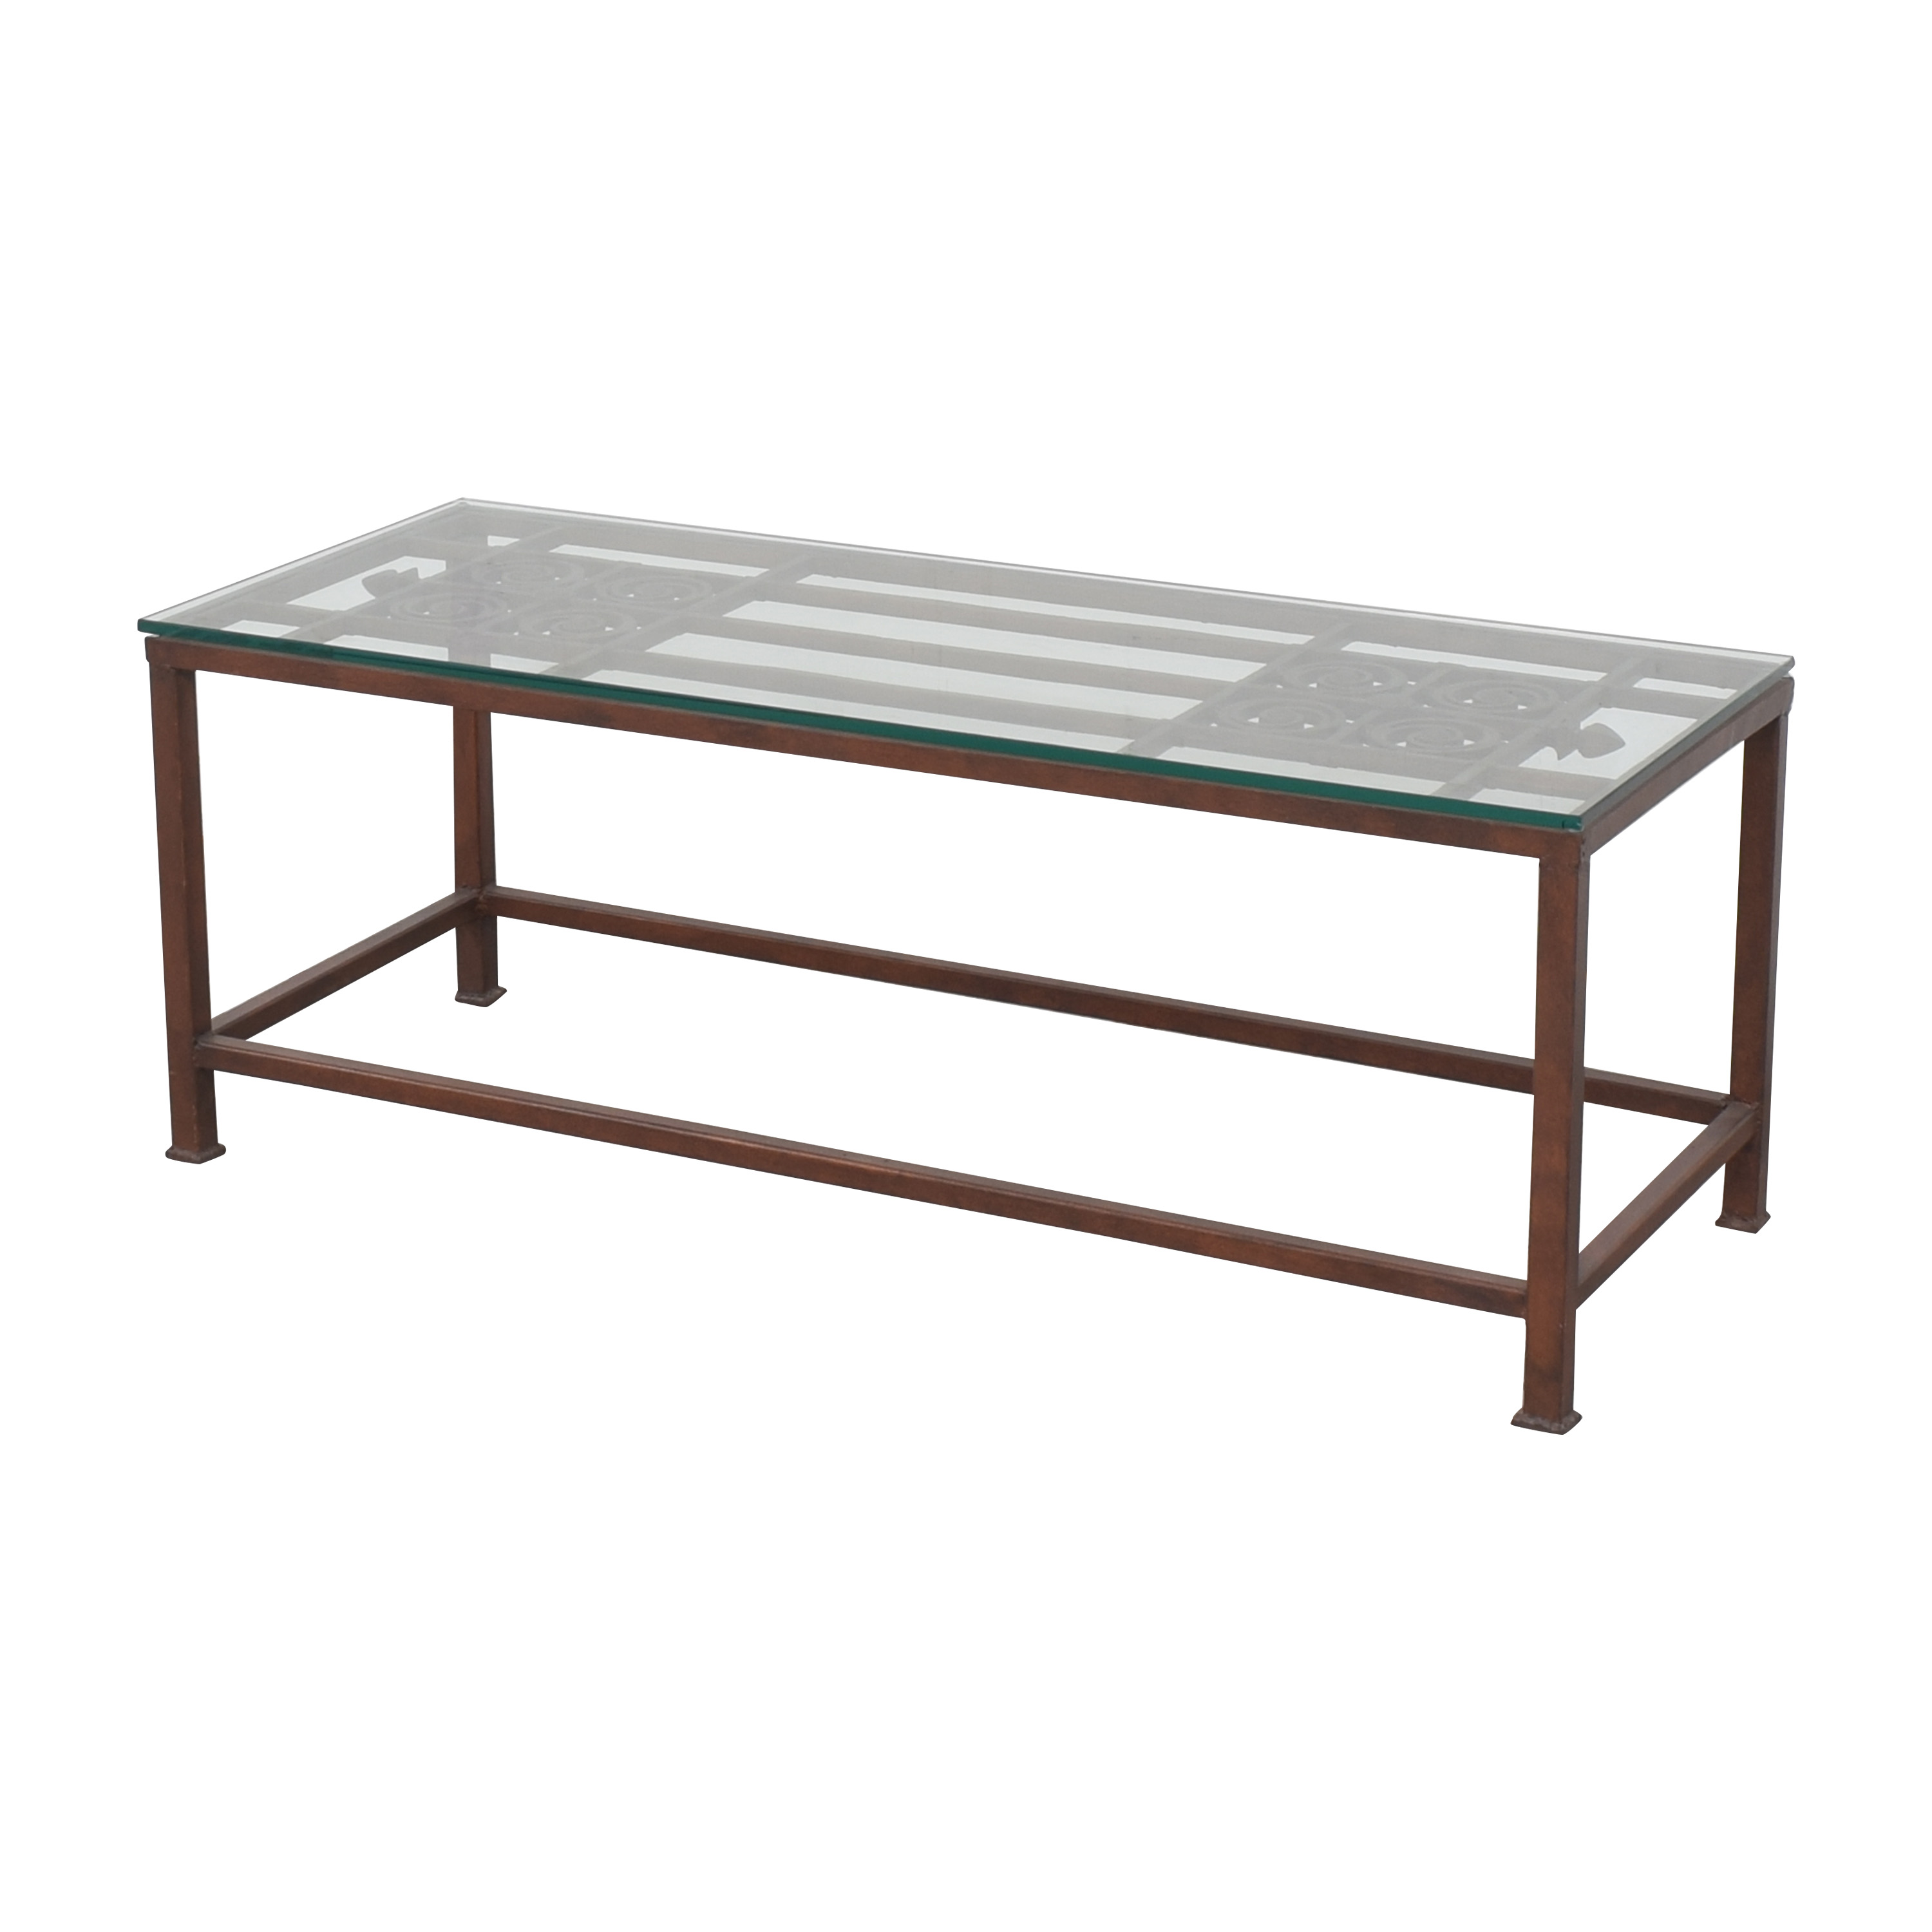 Open Work Coffee Table with Transparent Surface used